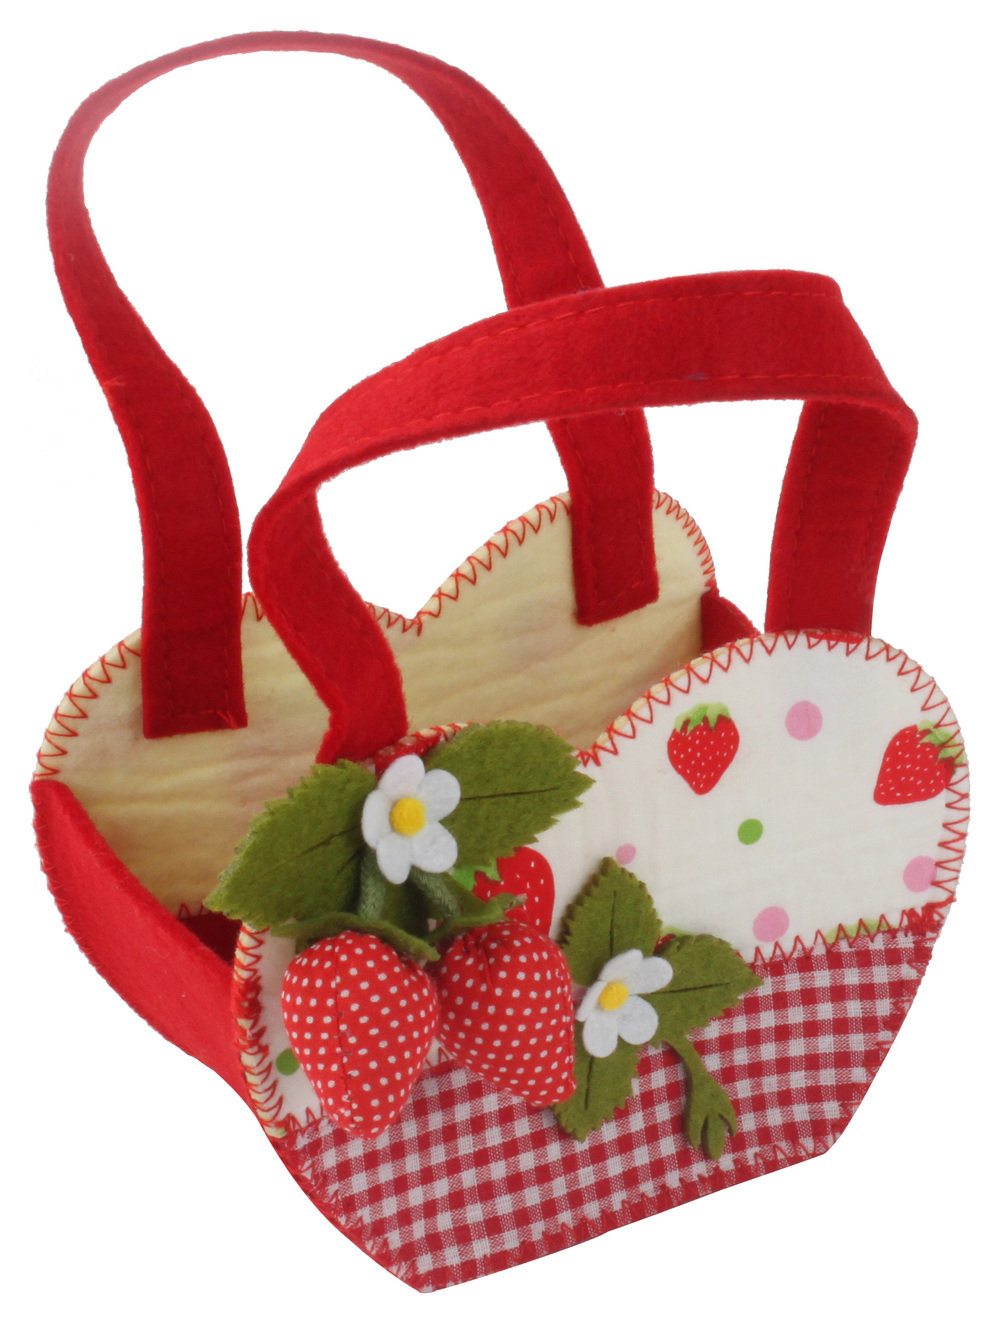 €5 STRAWBERRY FELT BASKET IN RED COLOR 16X10X11(20)